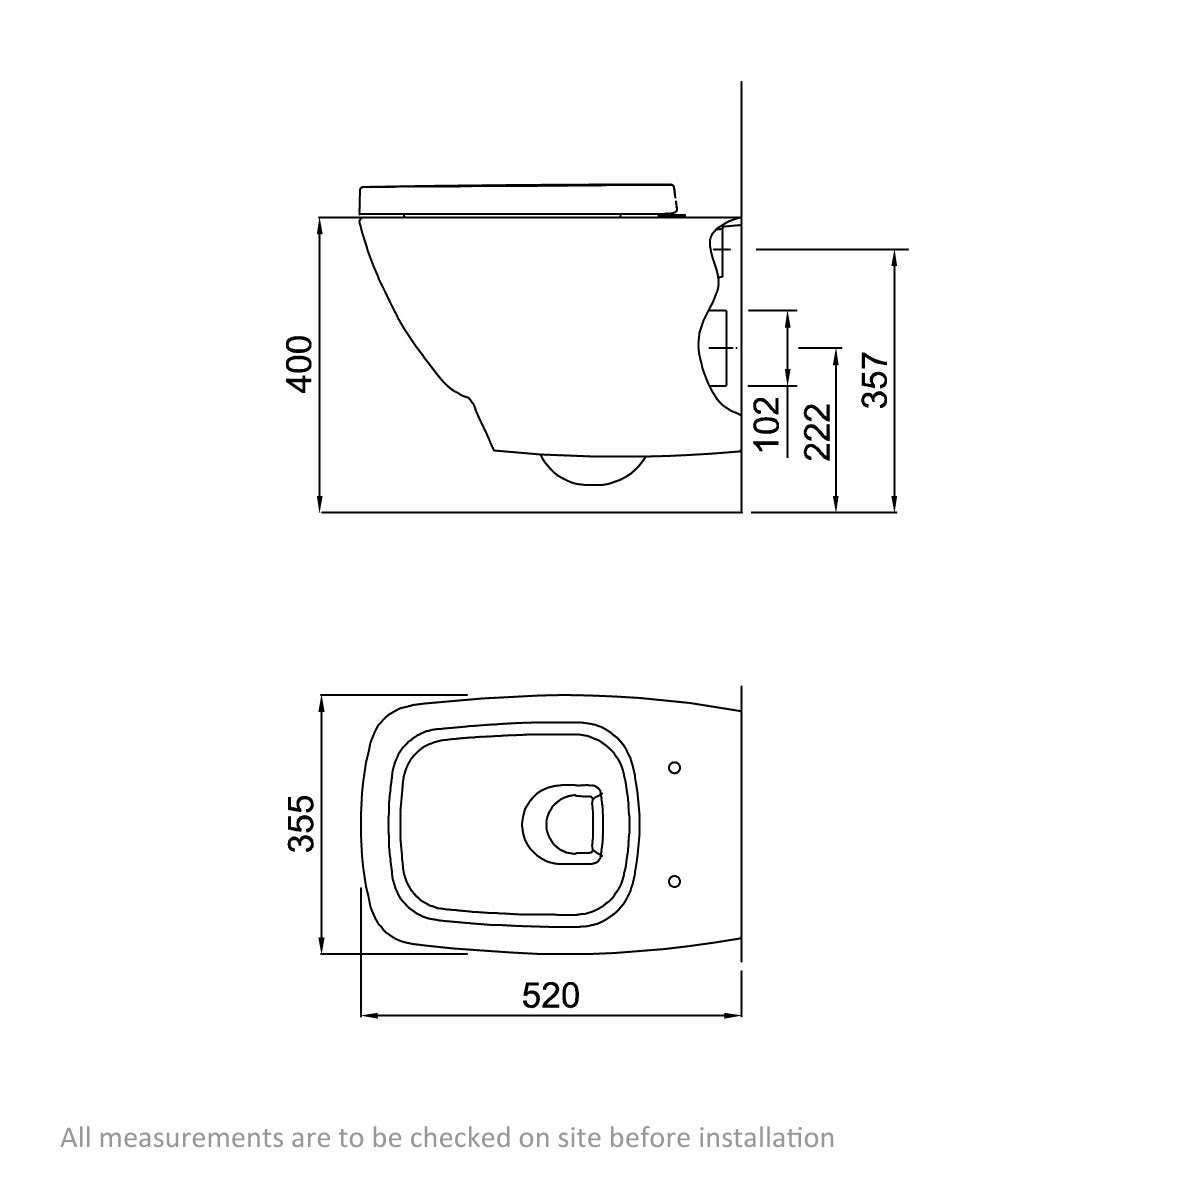 Dimensions for Mode Cooper wall hung toilet with soft close seat